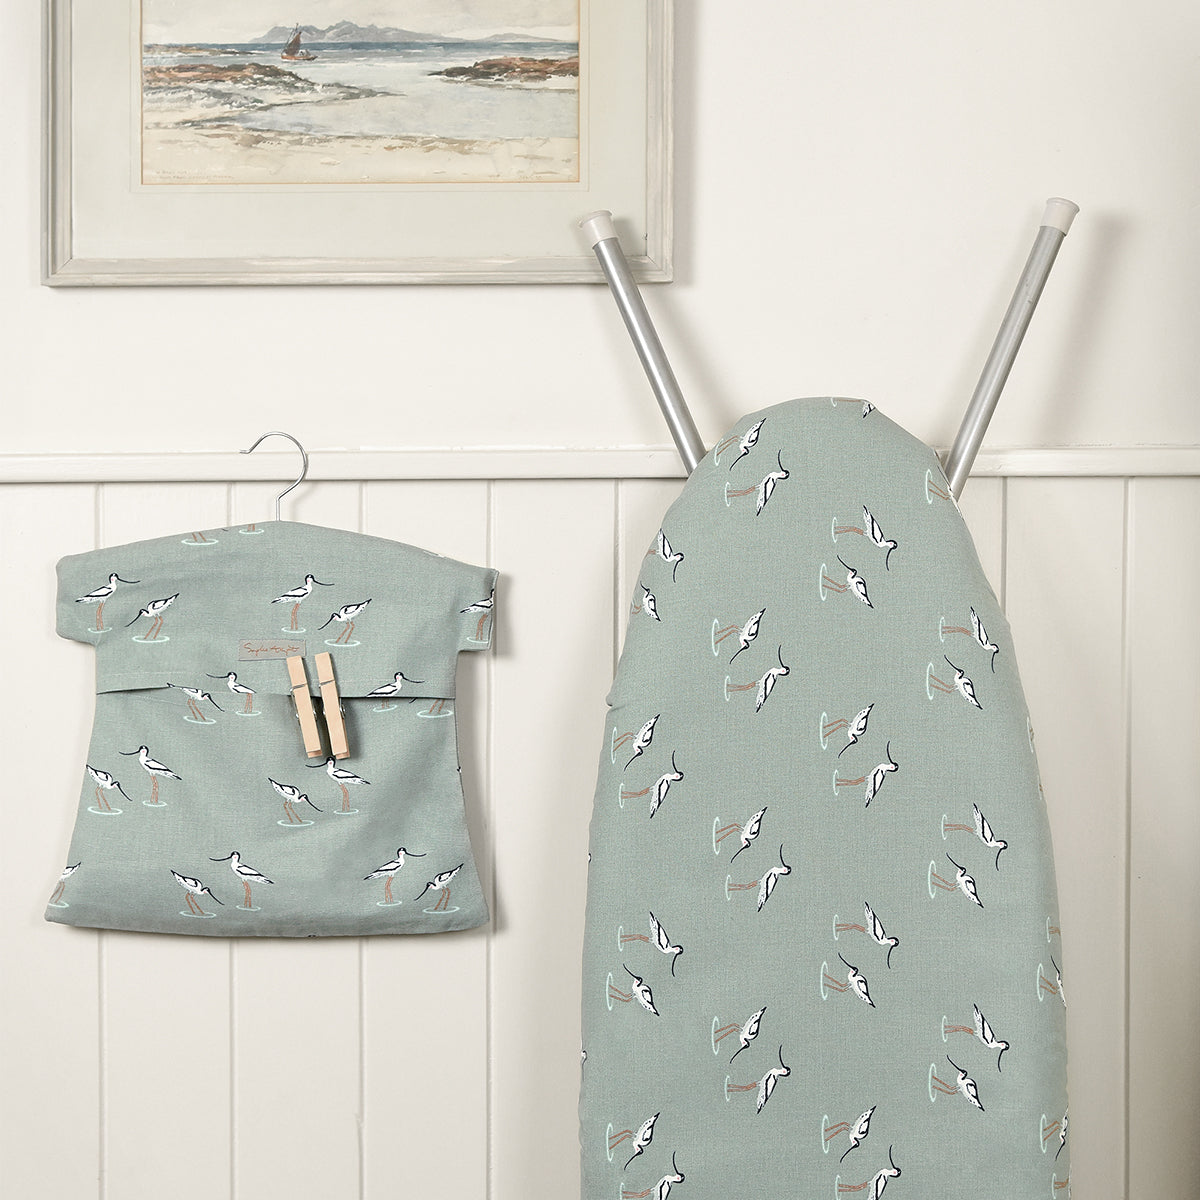 Coastal Birds Ironing Board Cover by Sophie Allport